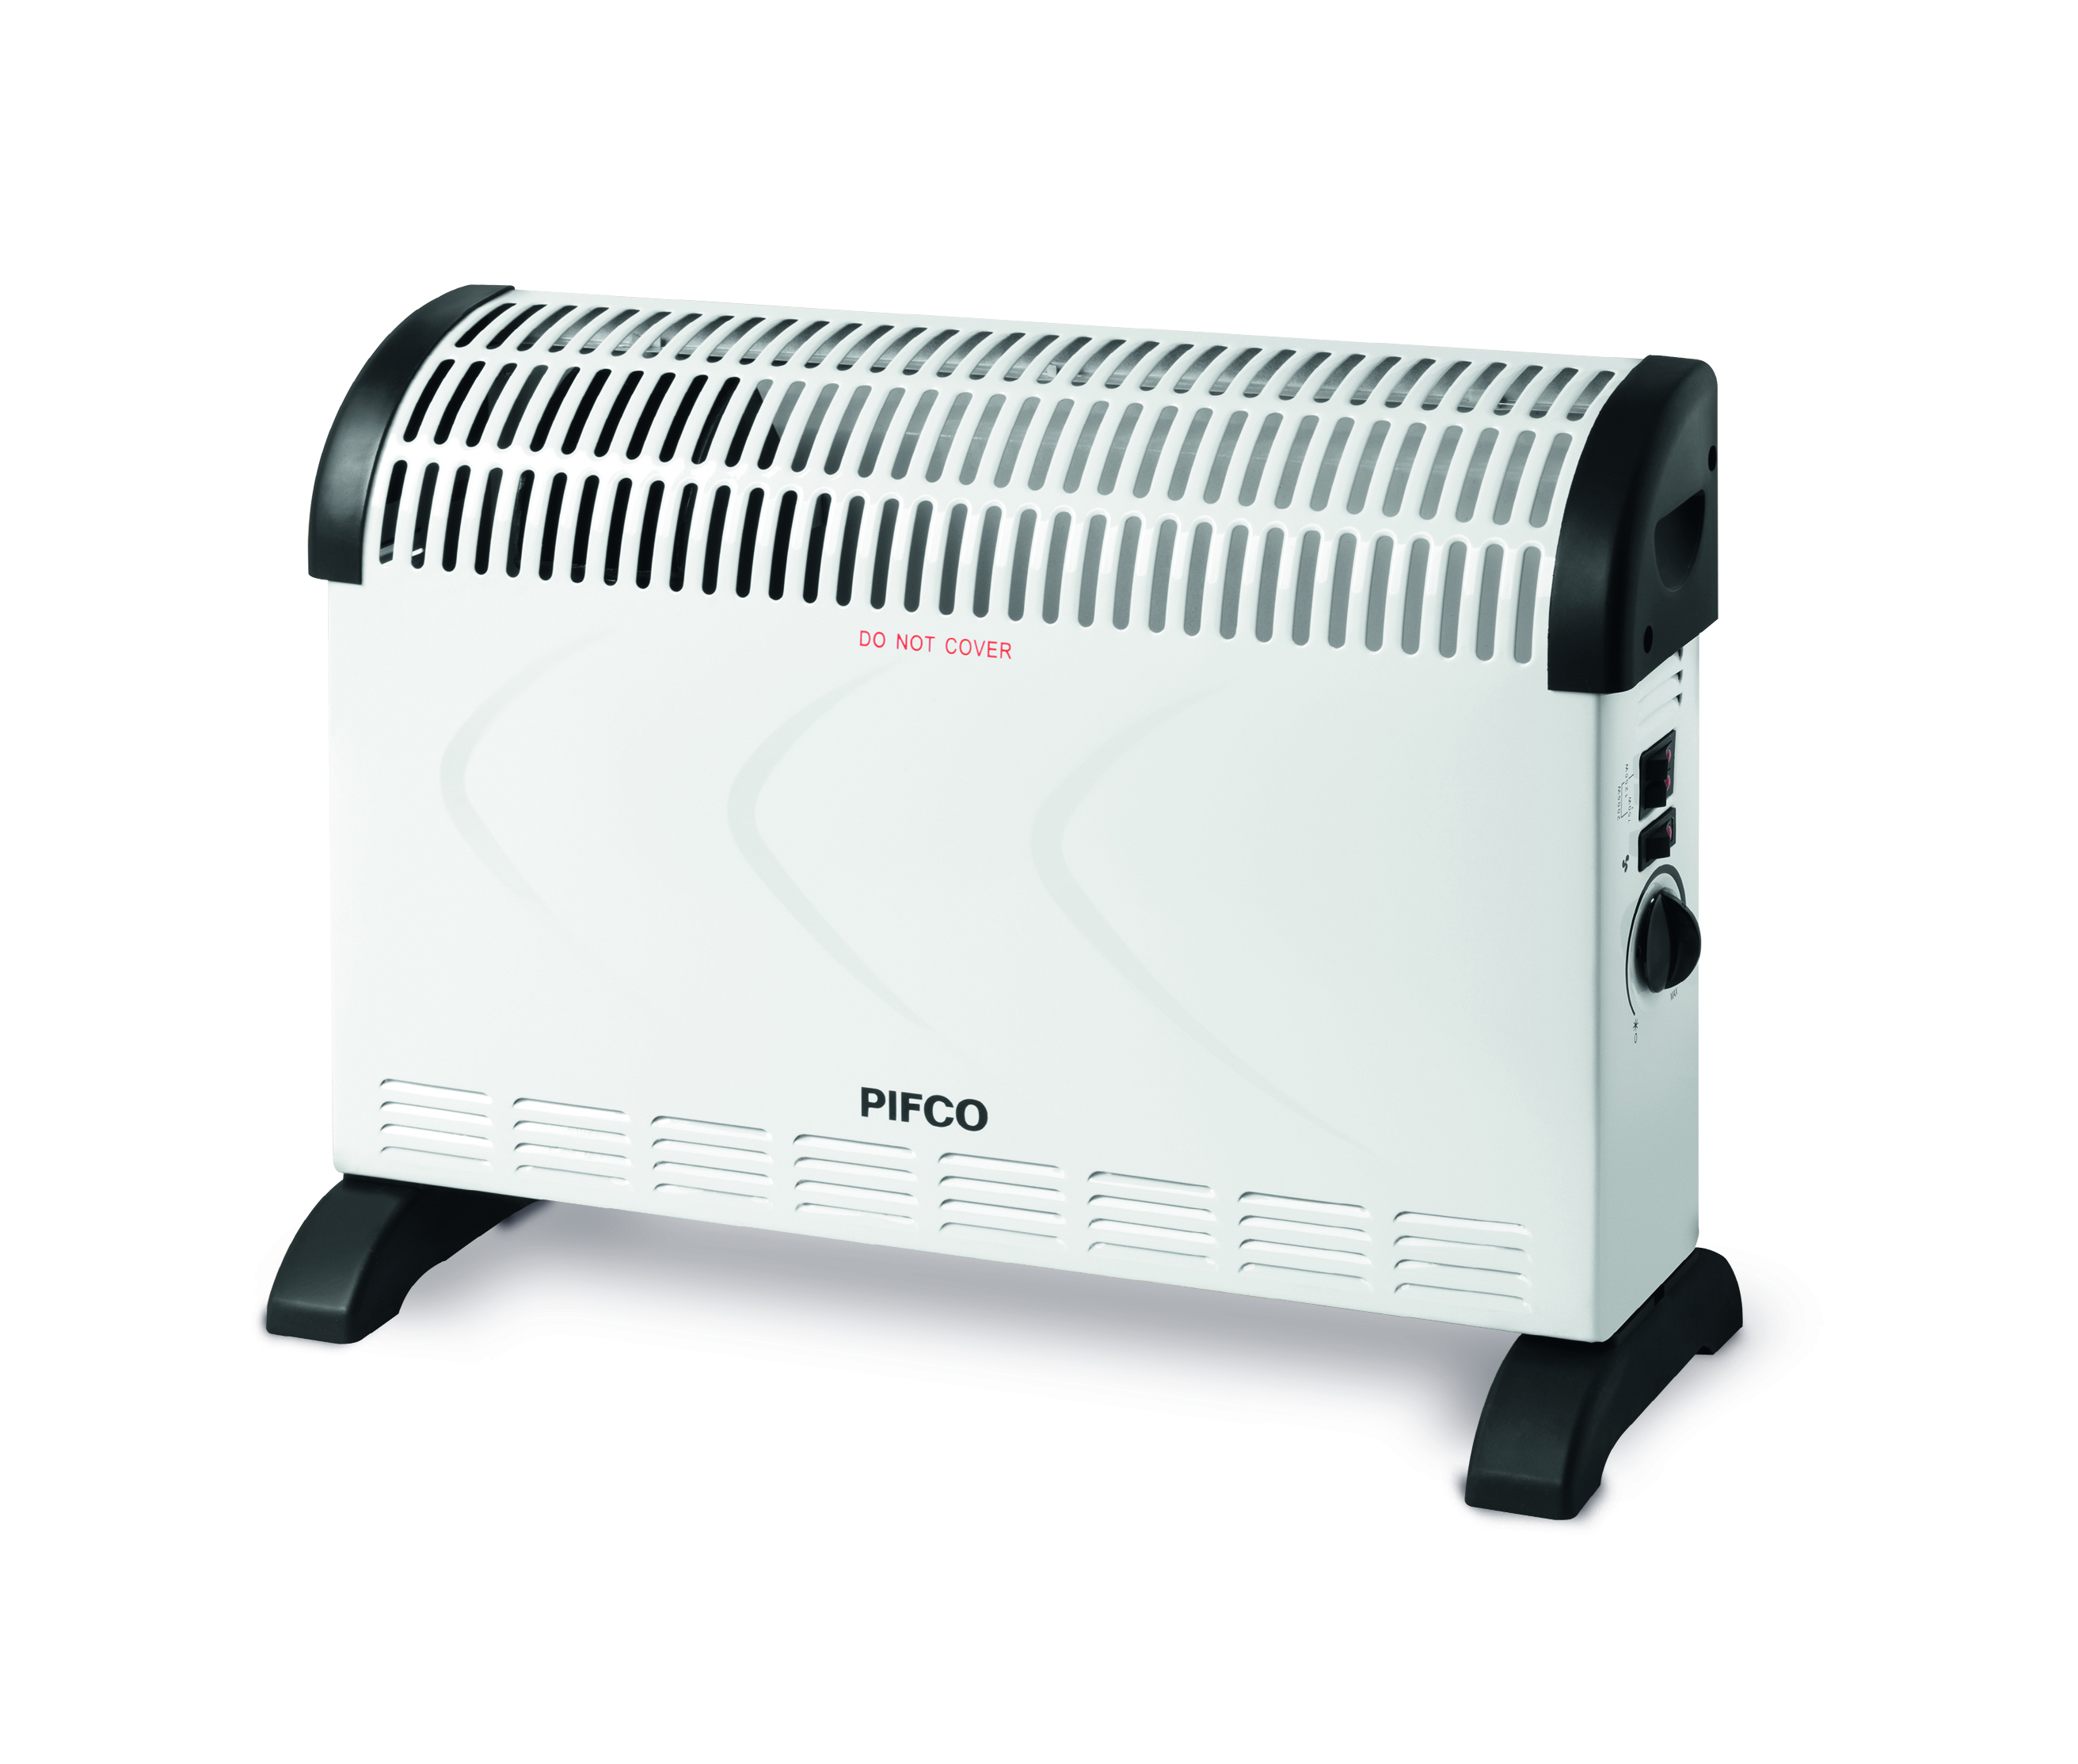 Pifco 2000W Convection Heater No Colour